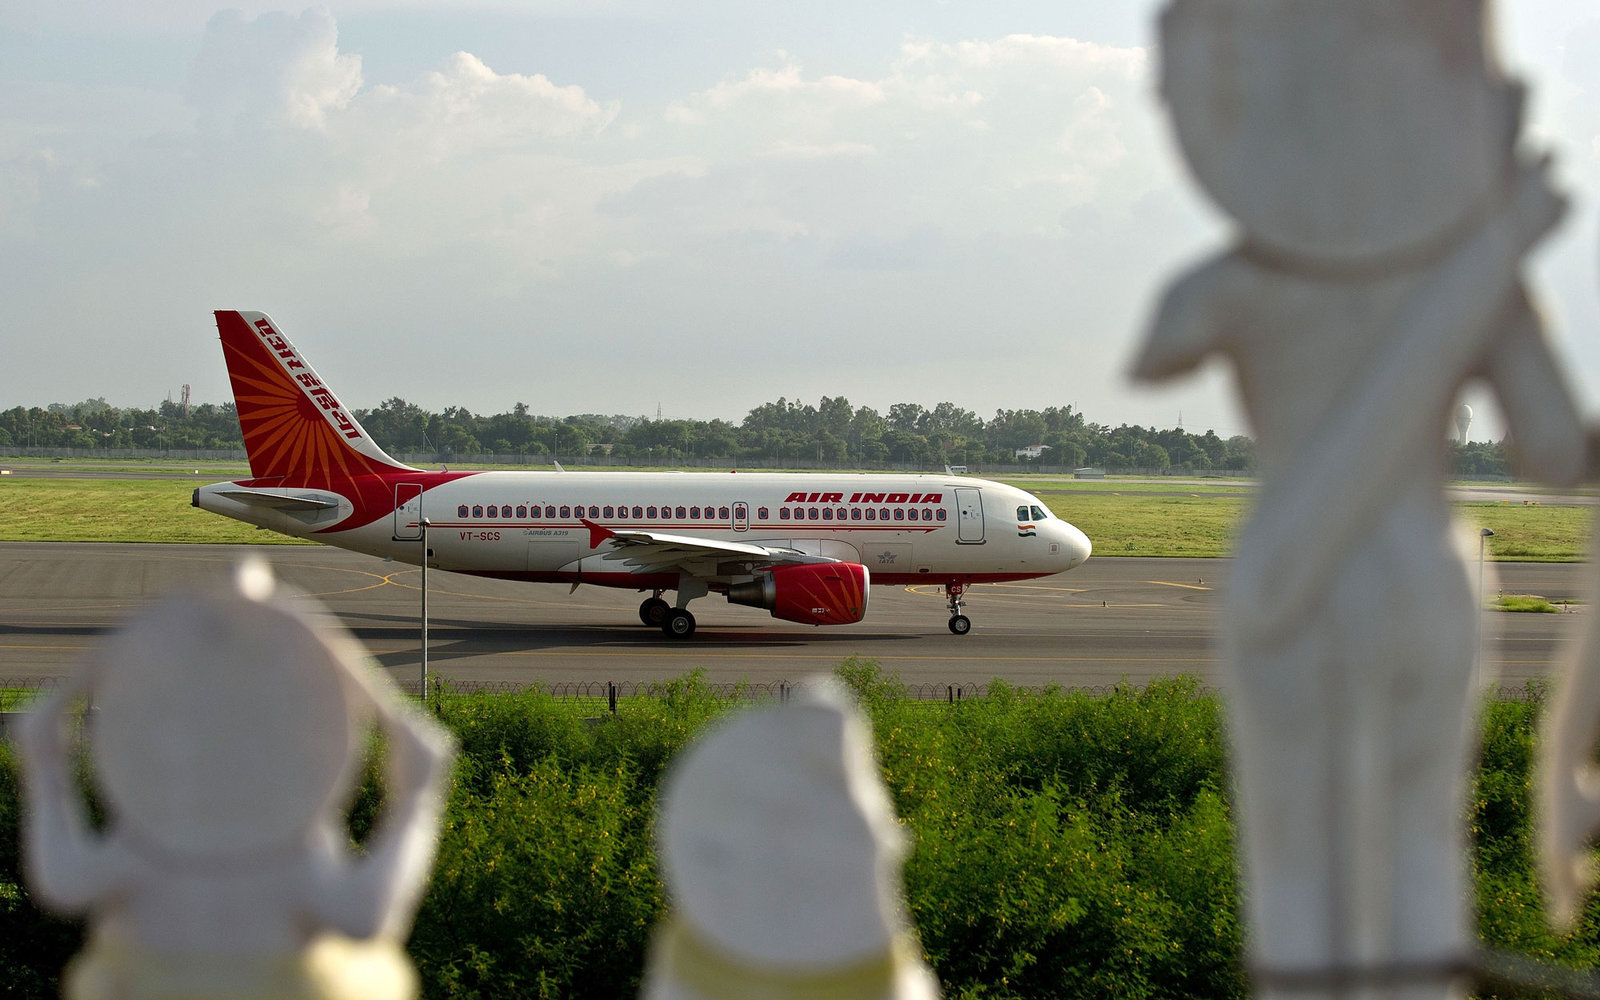 Air India Airplane at New Delhi Airport